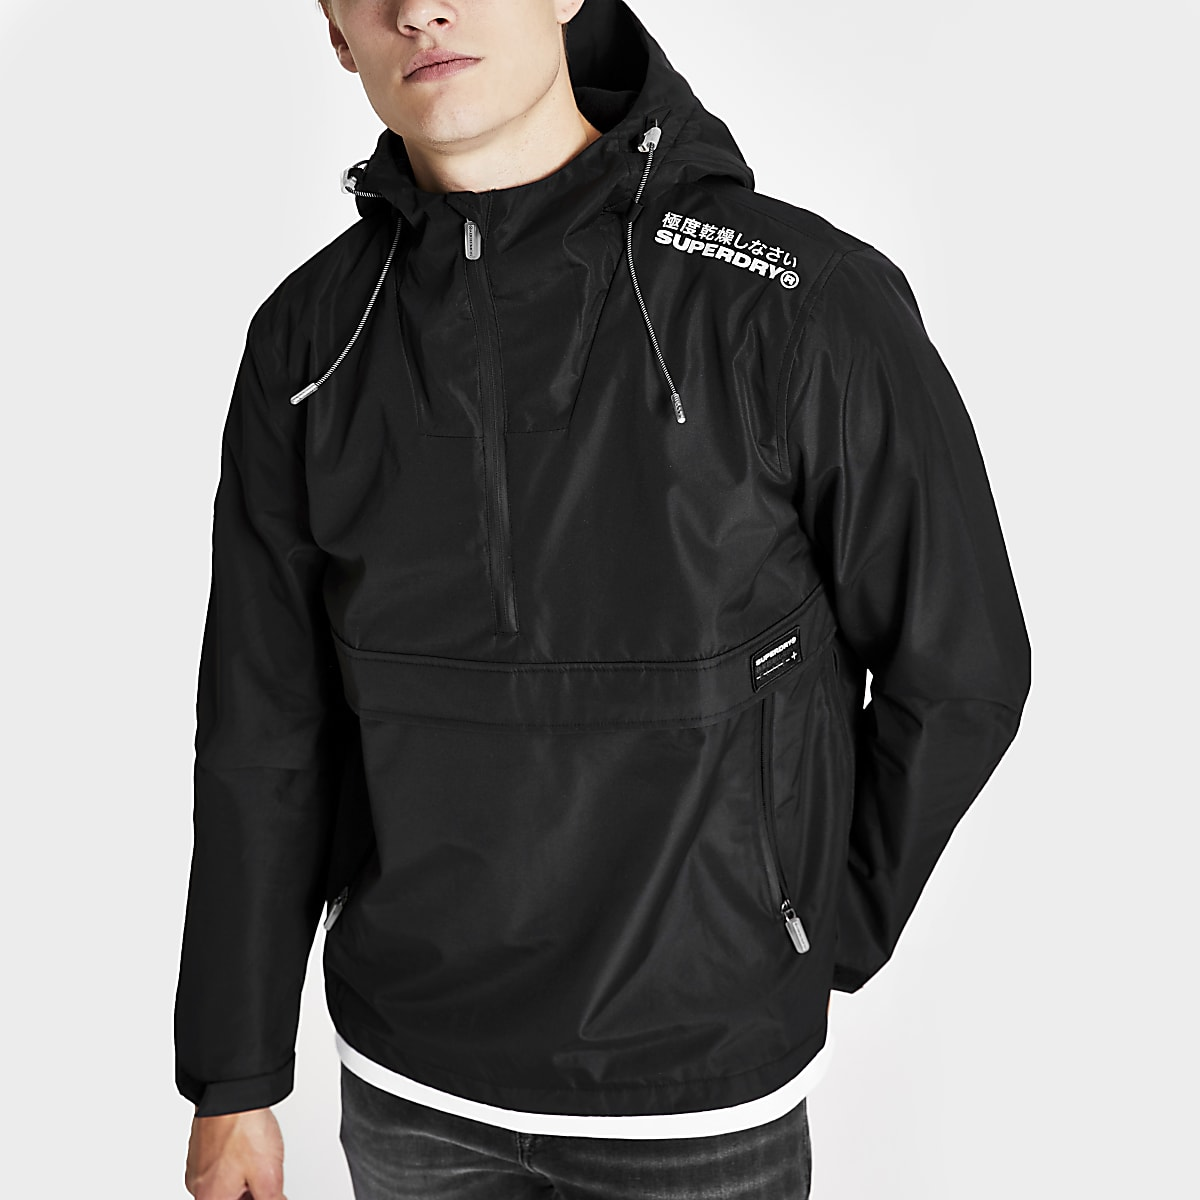 Superdry black overhead lightweight jacket